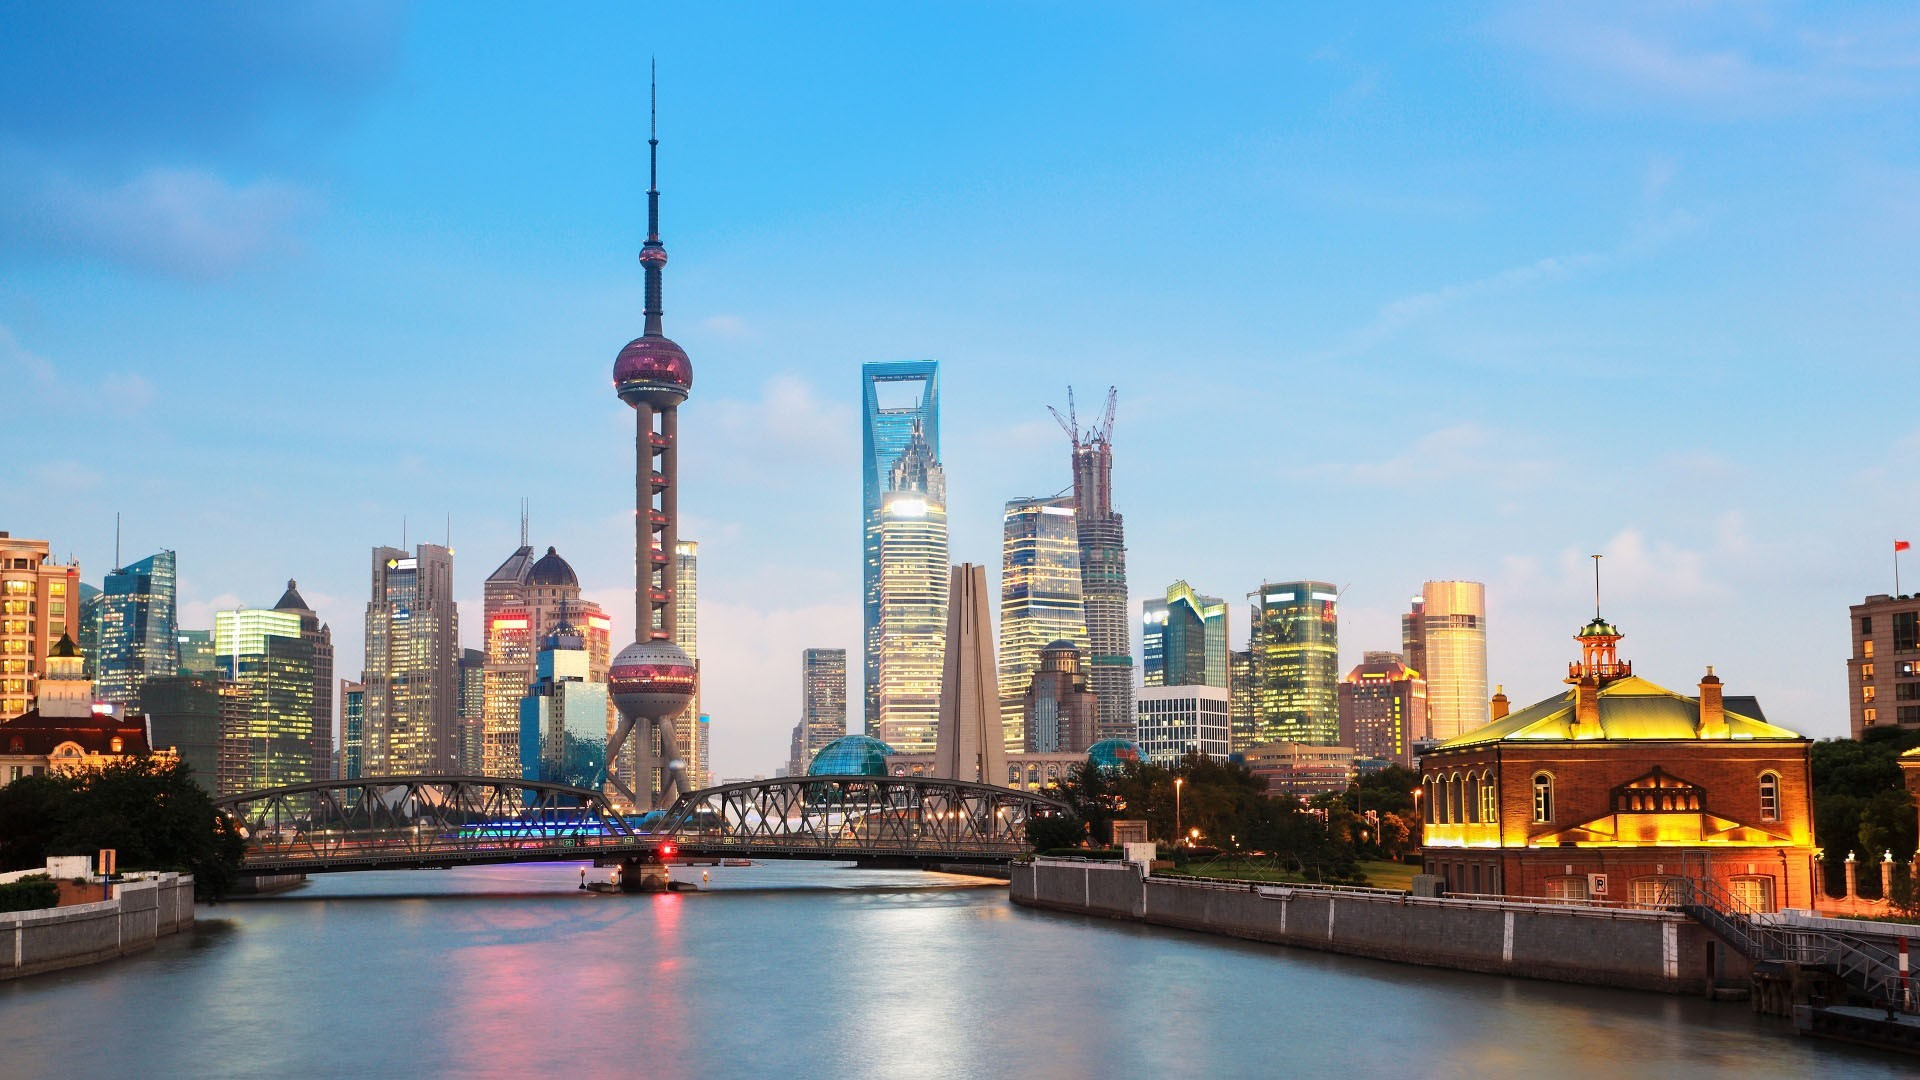 City Shanghai Cityscape Wallpaper HQ Backgrounds HD wallpapers 1920x1080